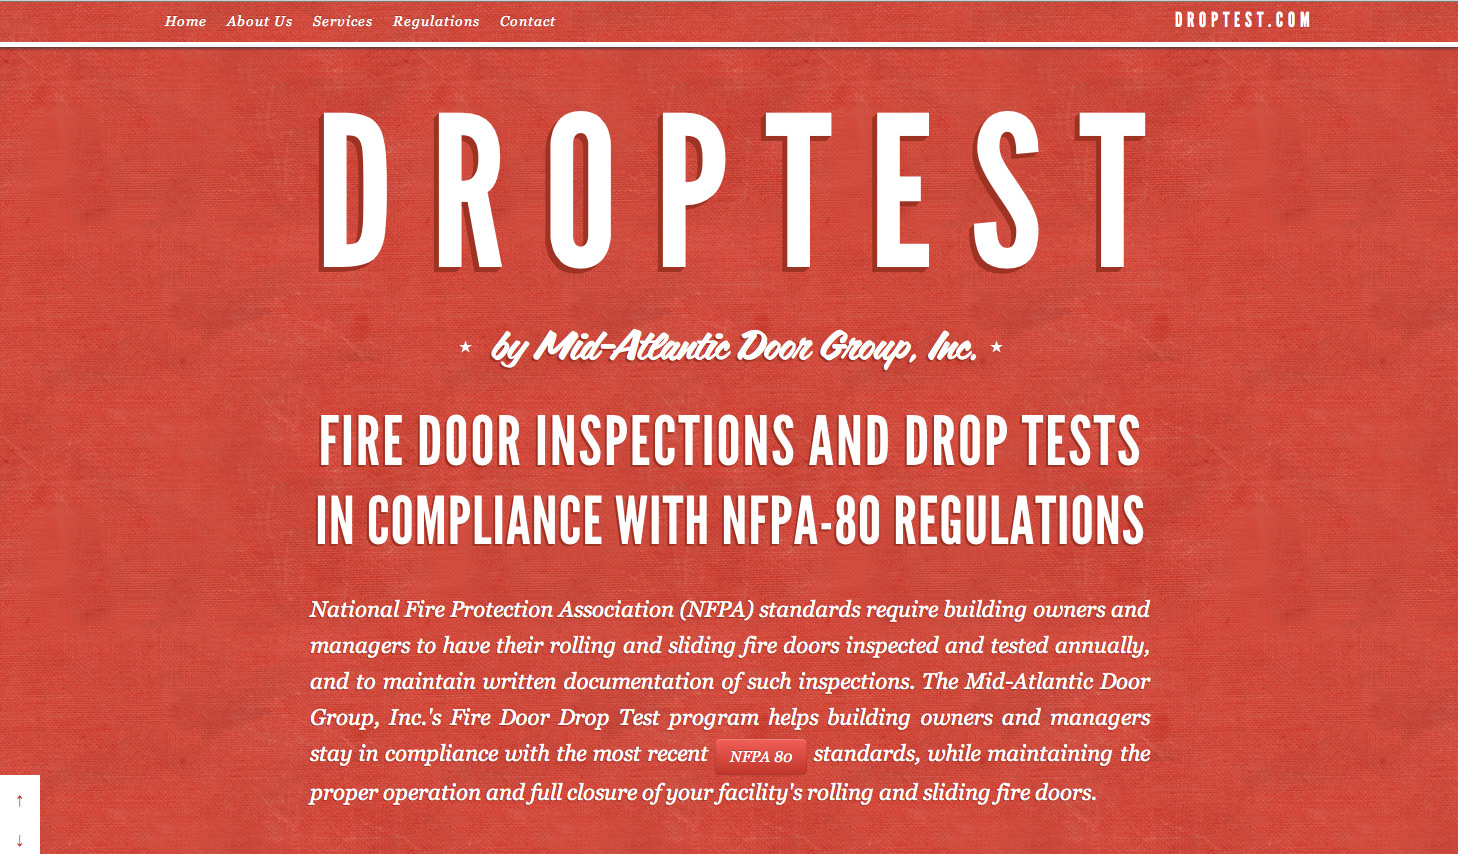 Droptest Website Screenshot